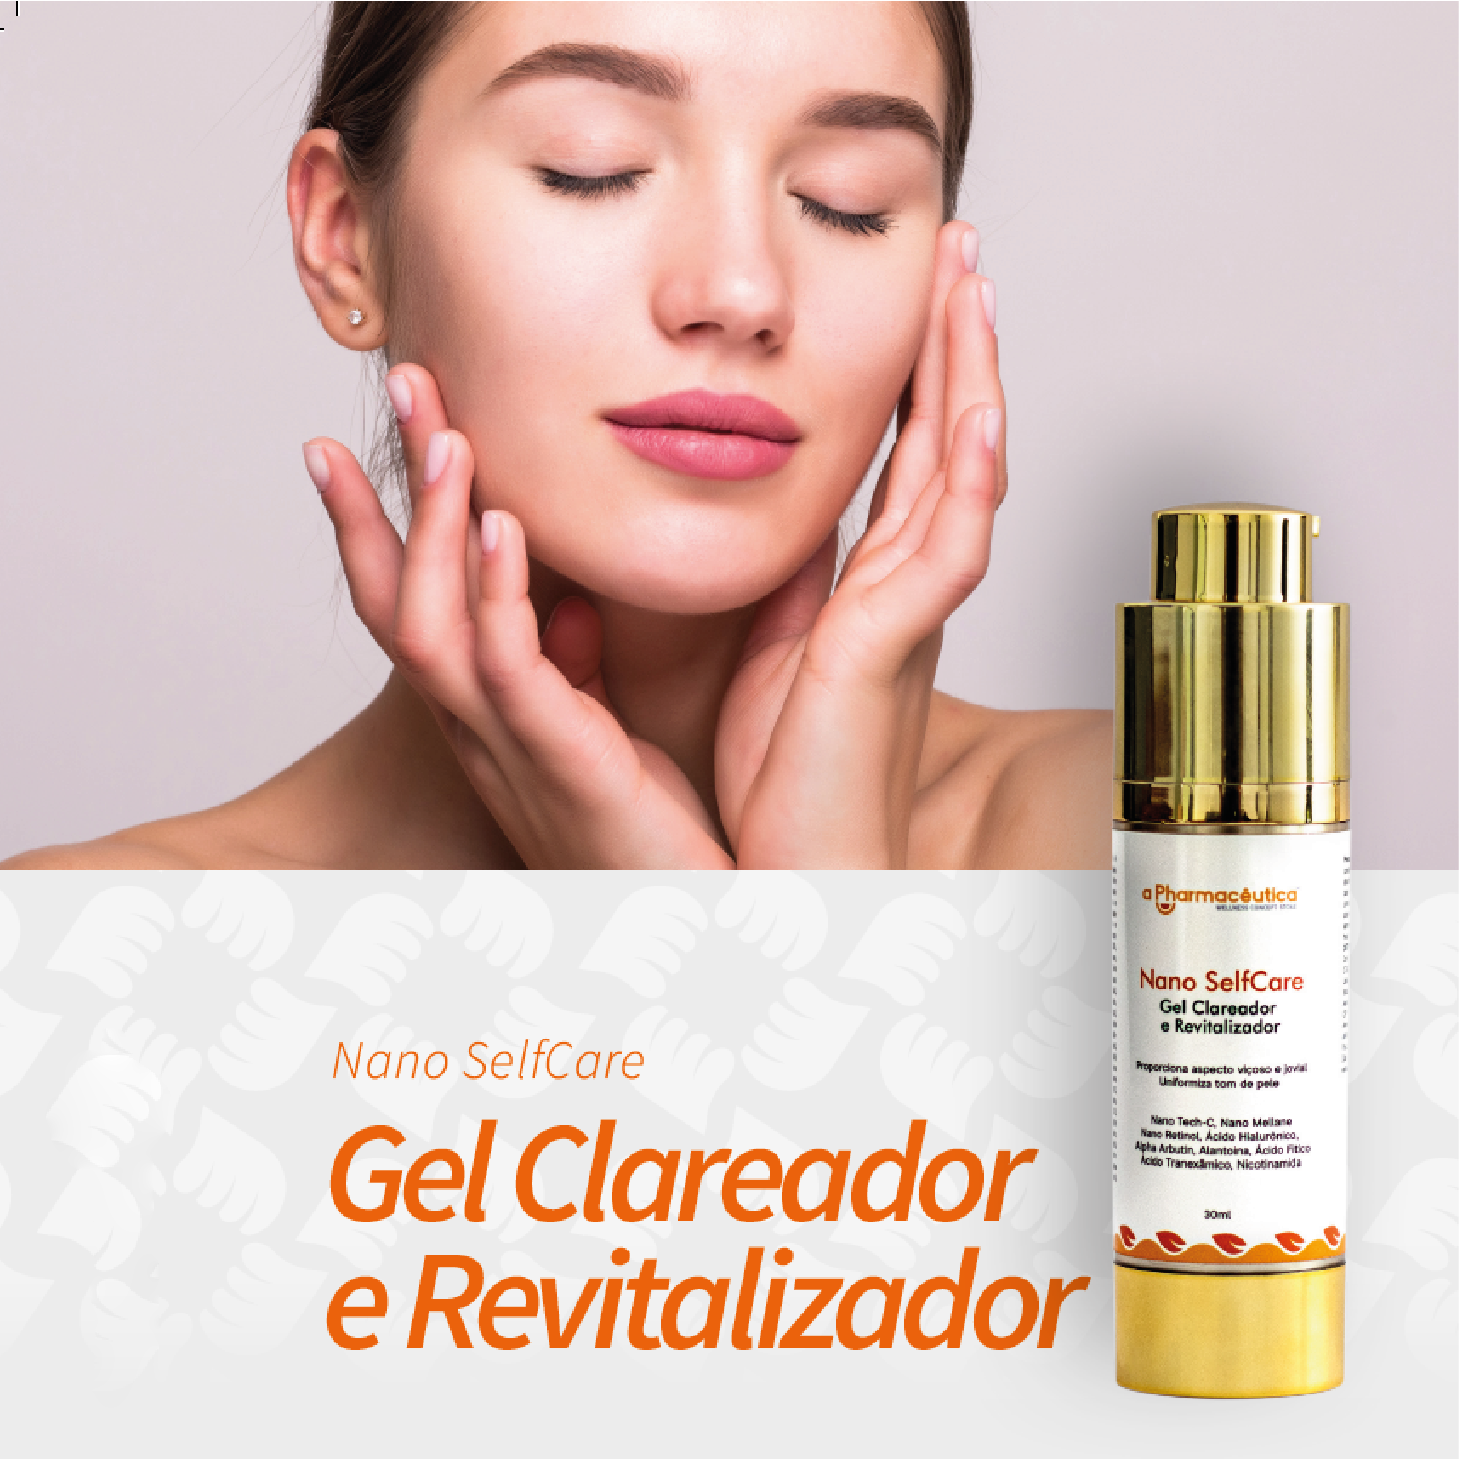 Gel Clareador e Revitalizador